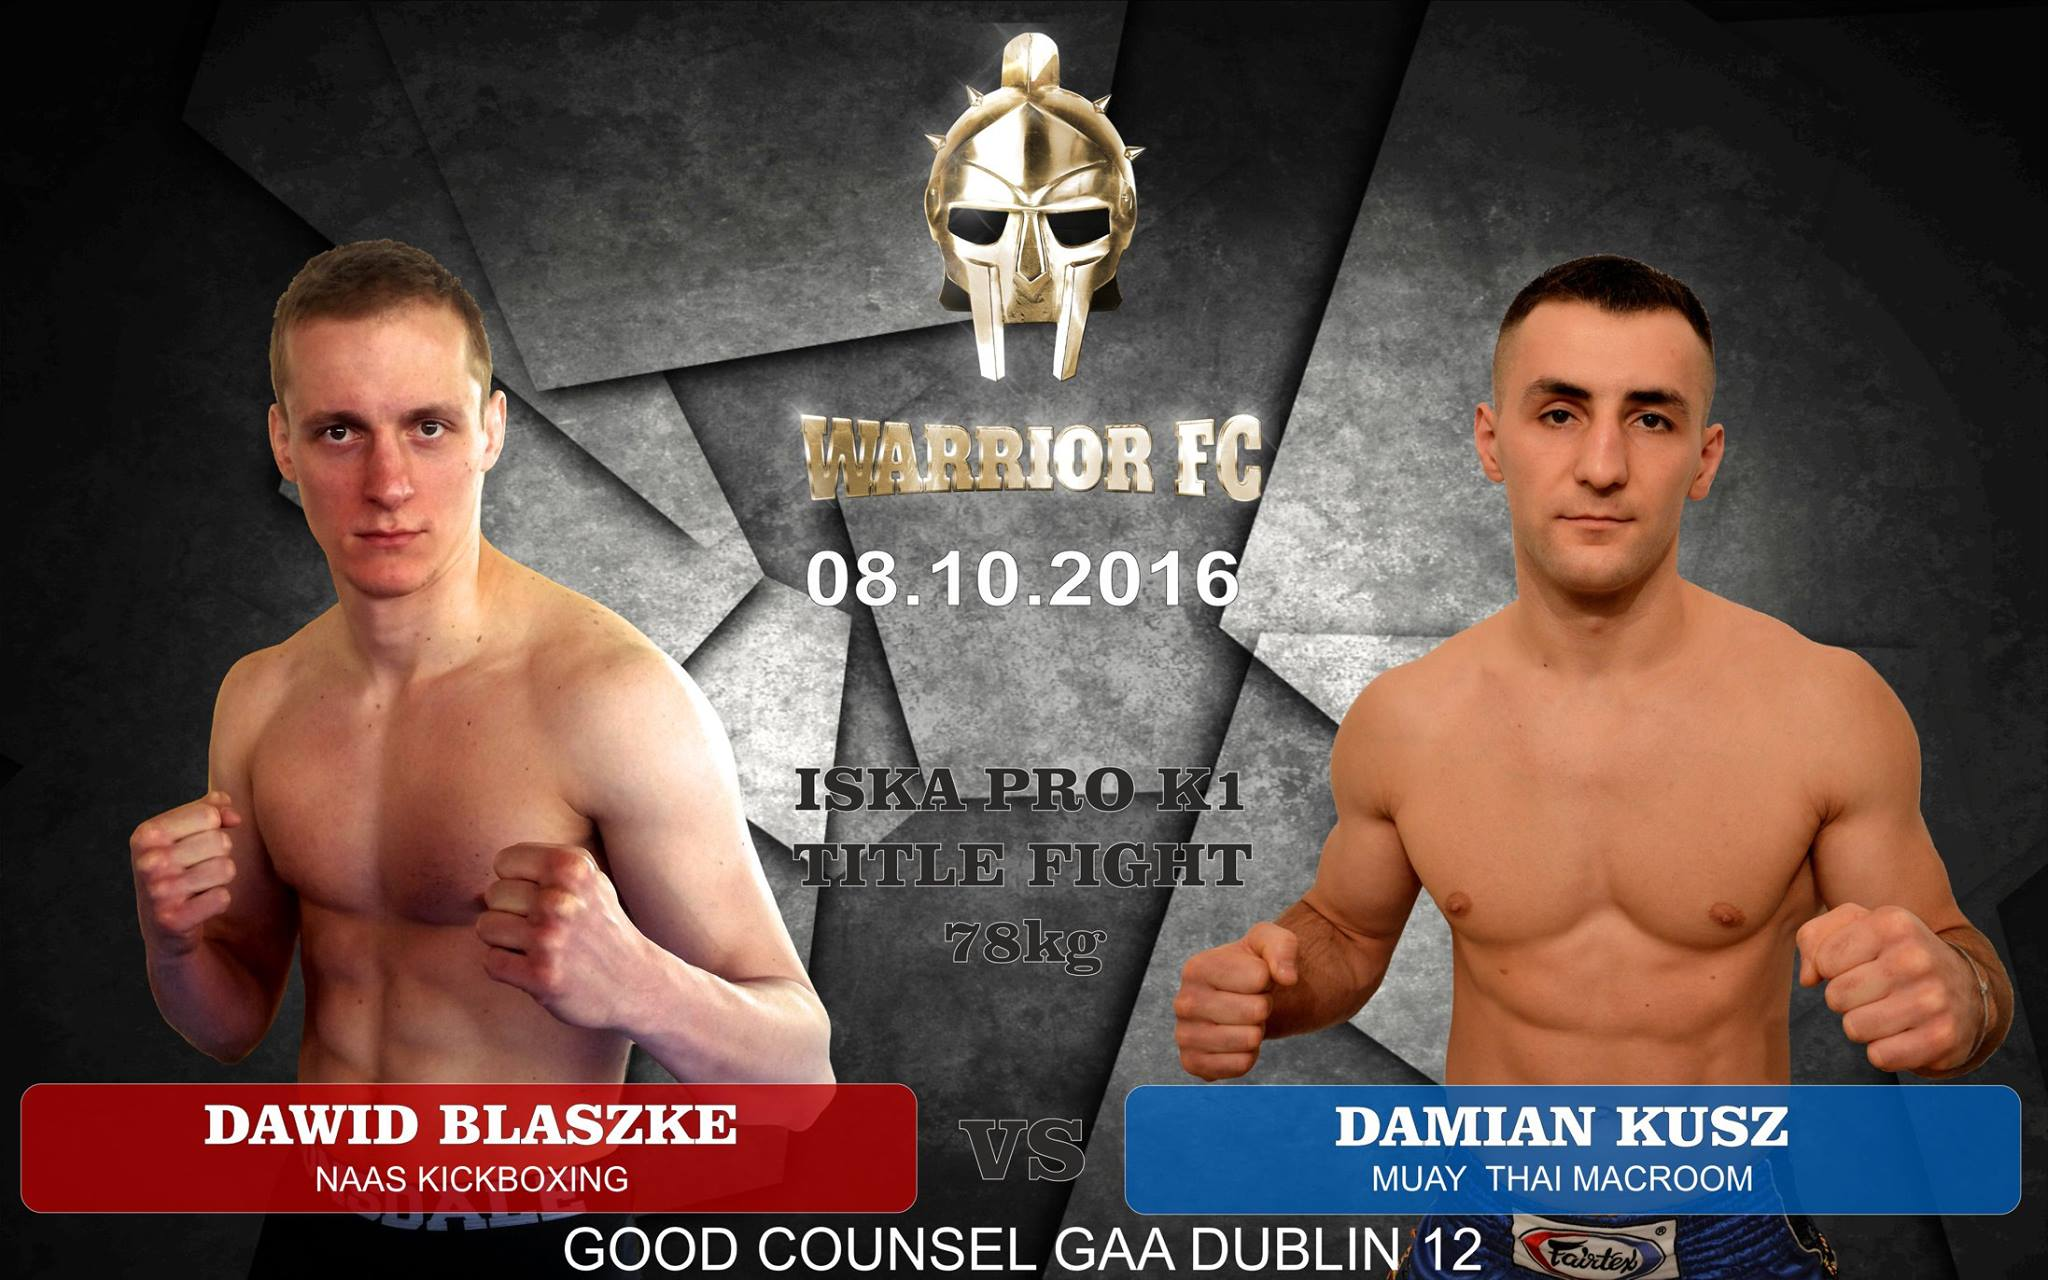 Damian Kusz: The ISKA belt will be a prize for all my hard work